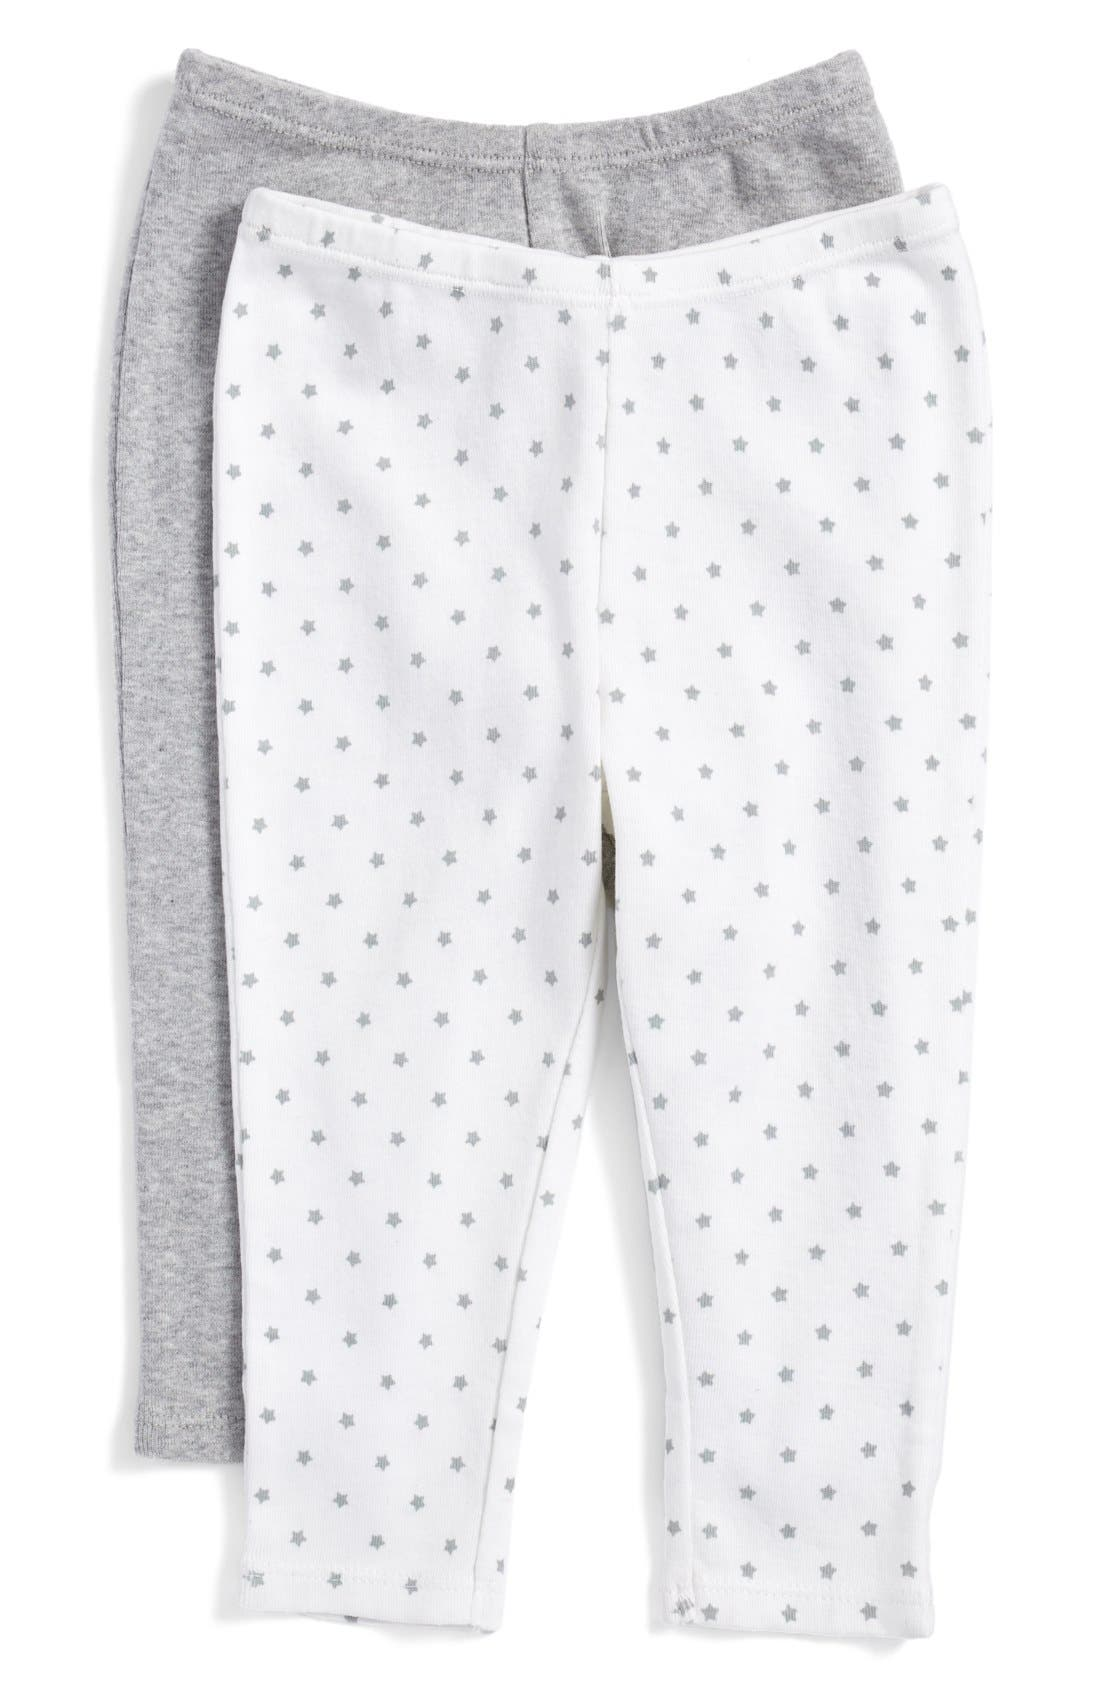 Nordstrom Baby Cotton Pants (2-Pack) (Baby)